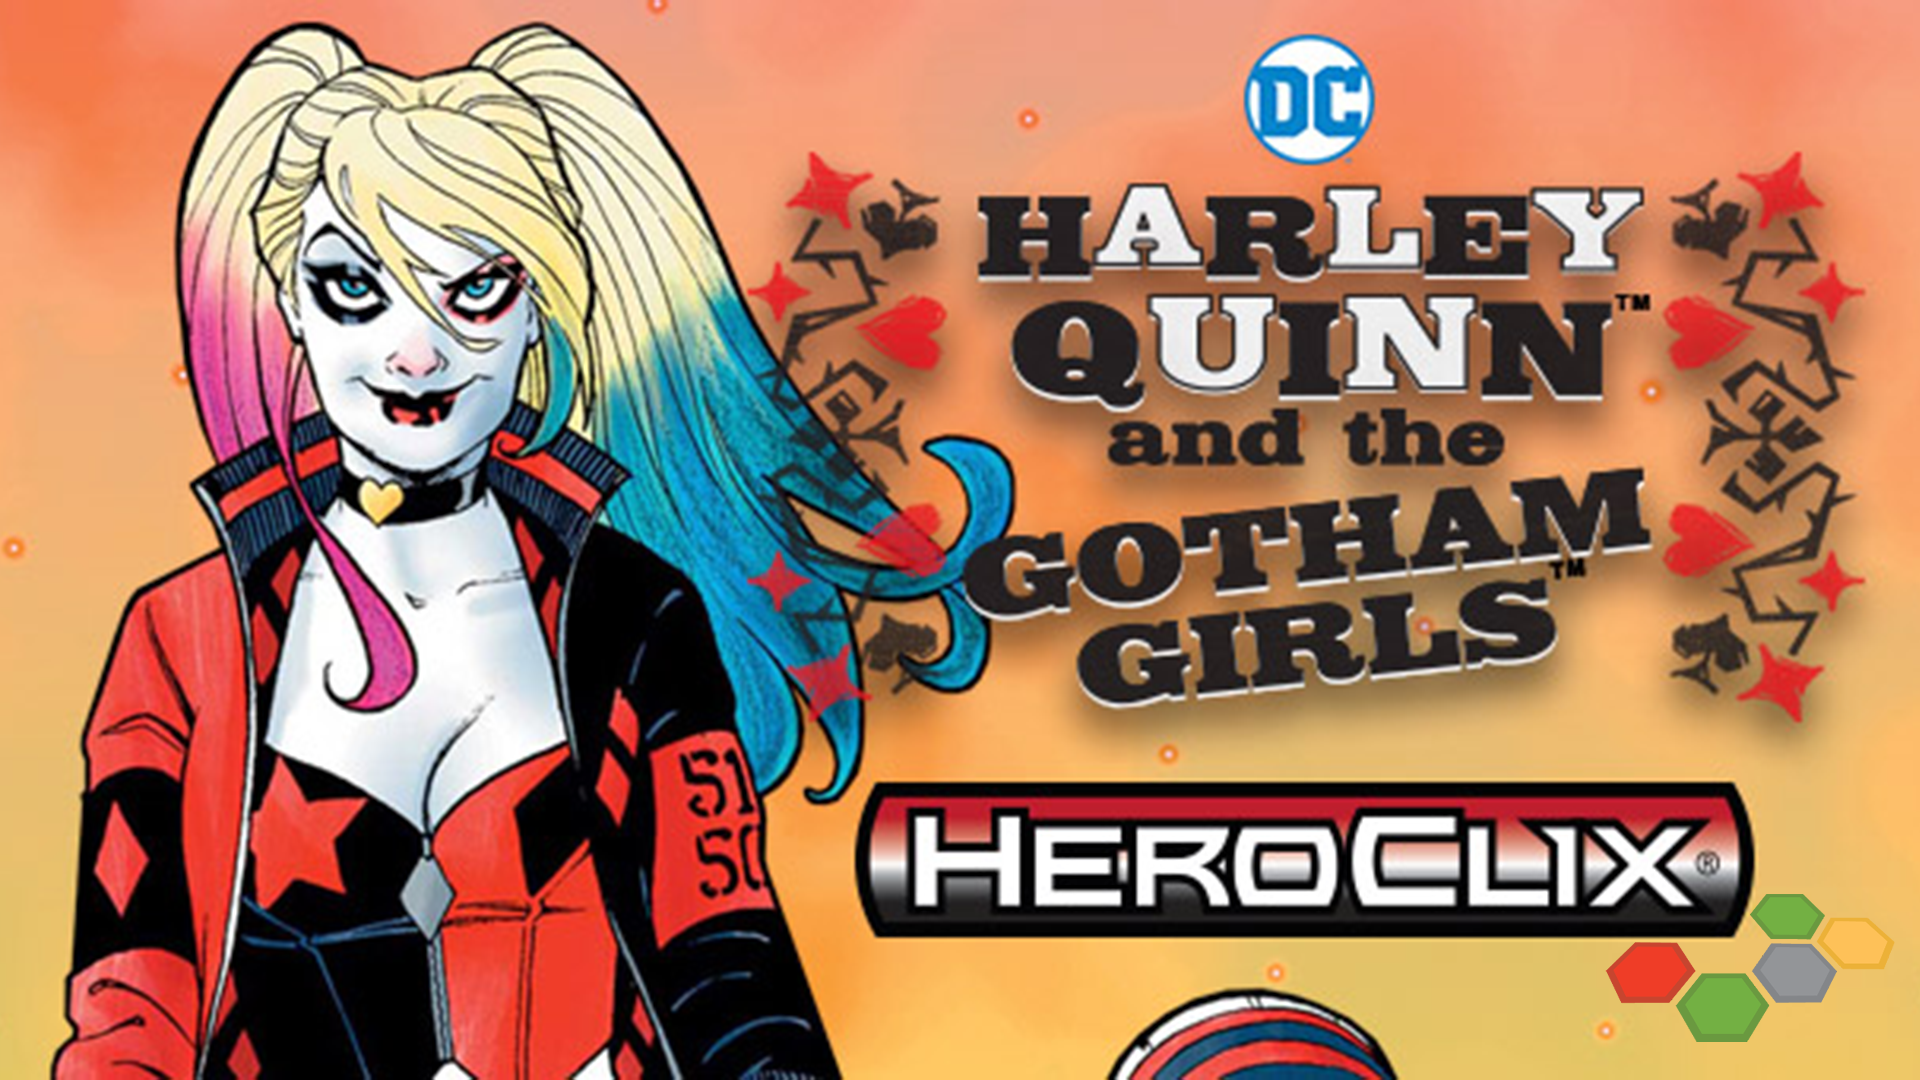 heroclix harley quinn and the gotham girls event image.png